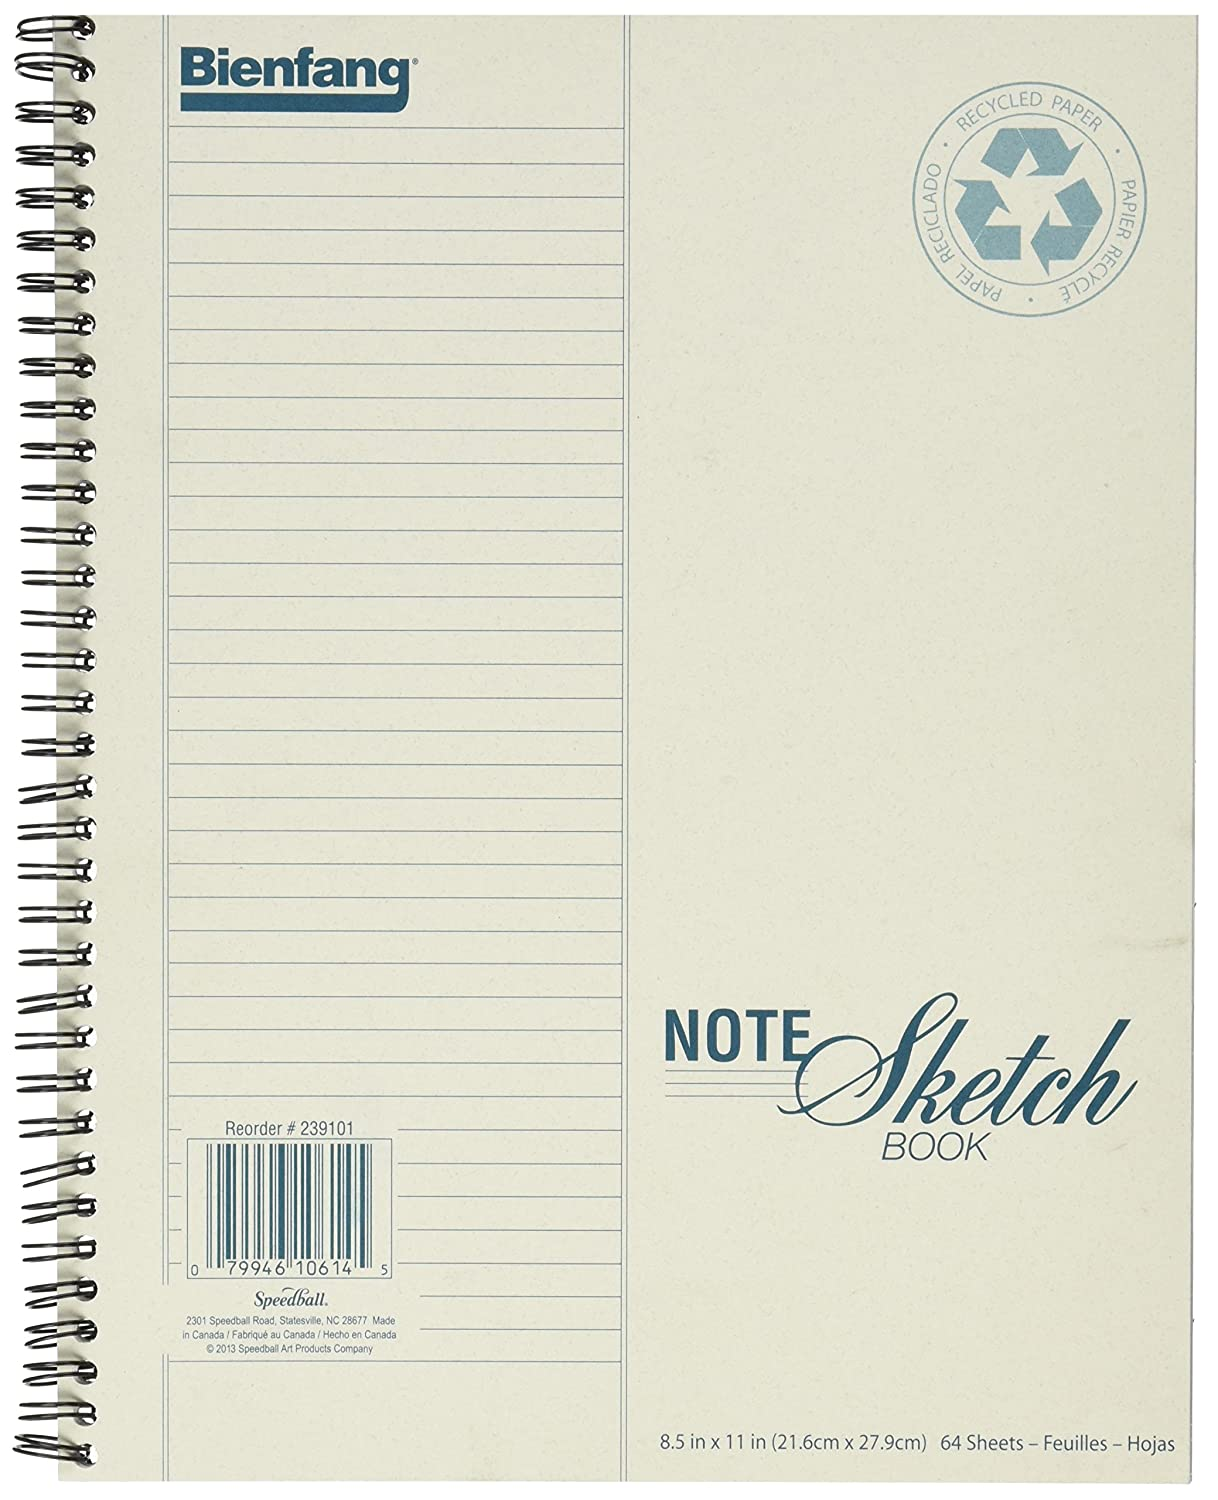 Bienfang Notesketch Paper Pad, Vertical Lined, 64 Sheets, 8.5-Inch by 11-Inch 239101